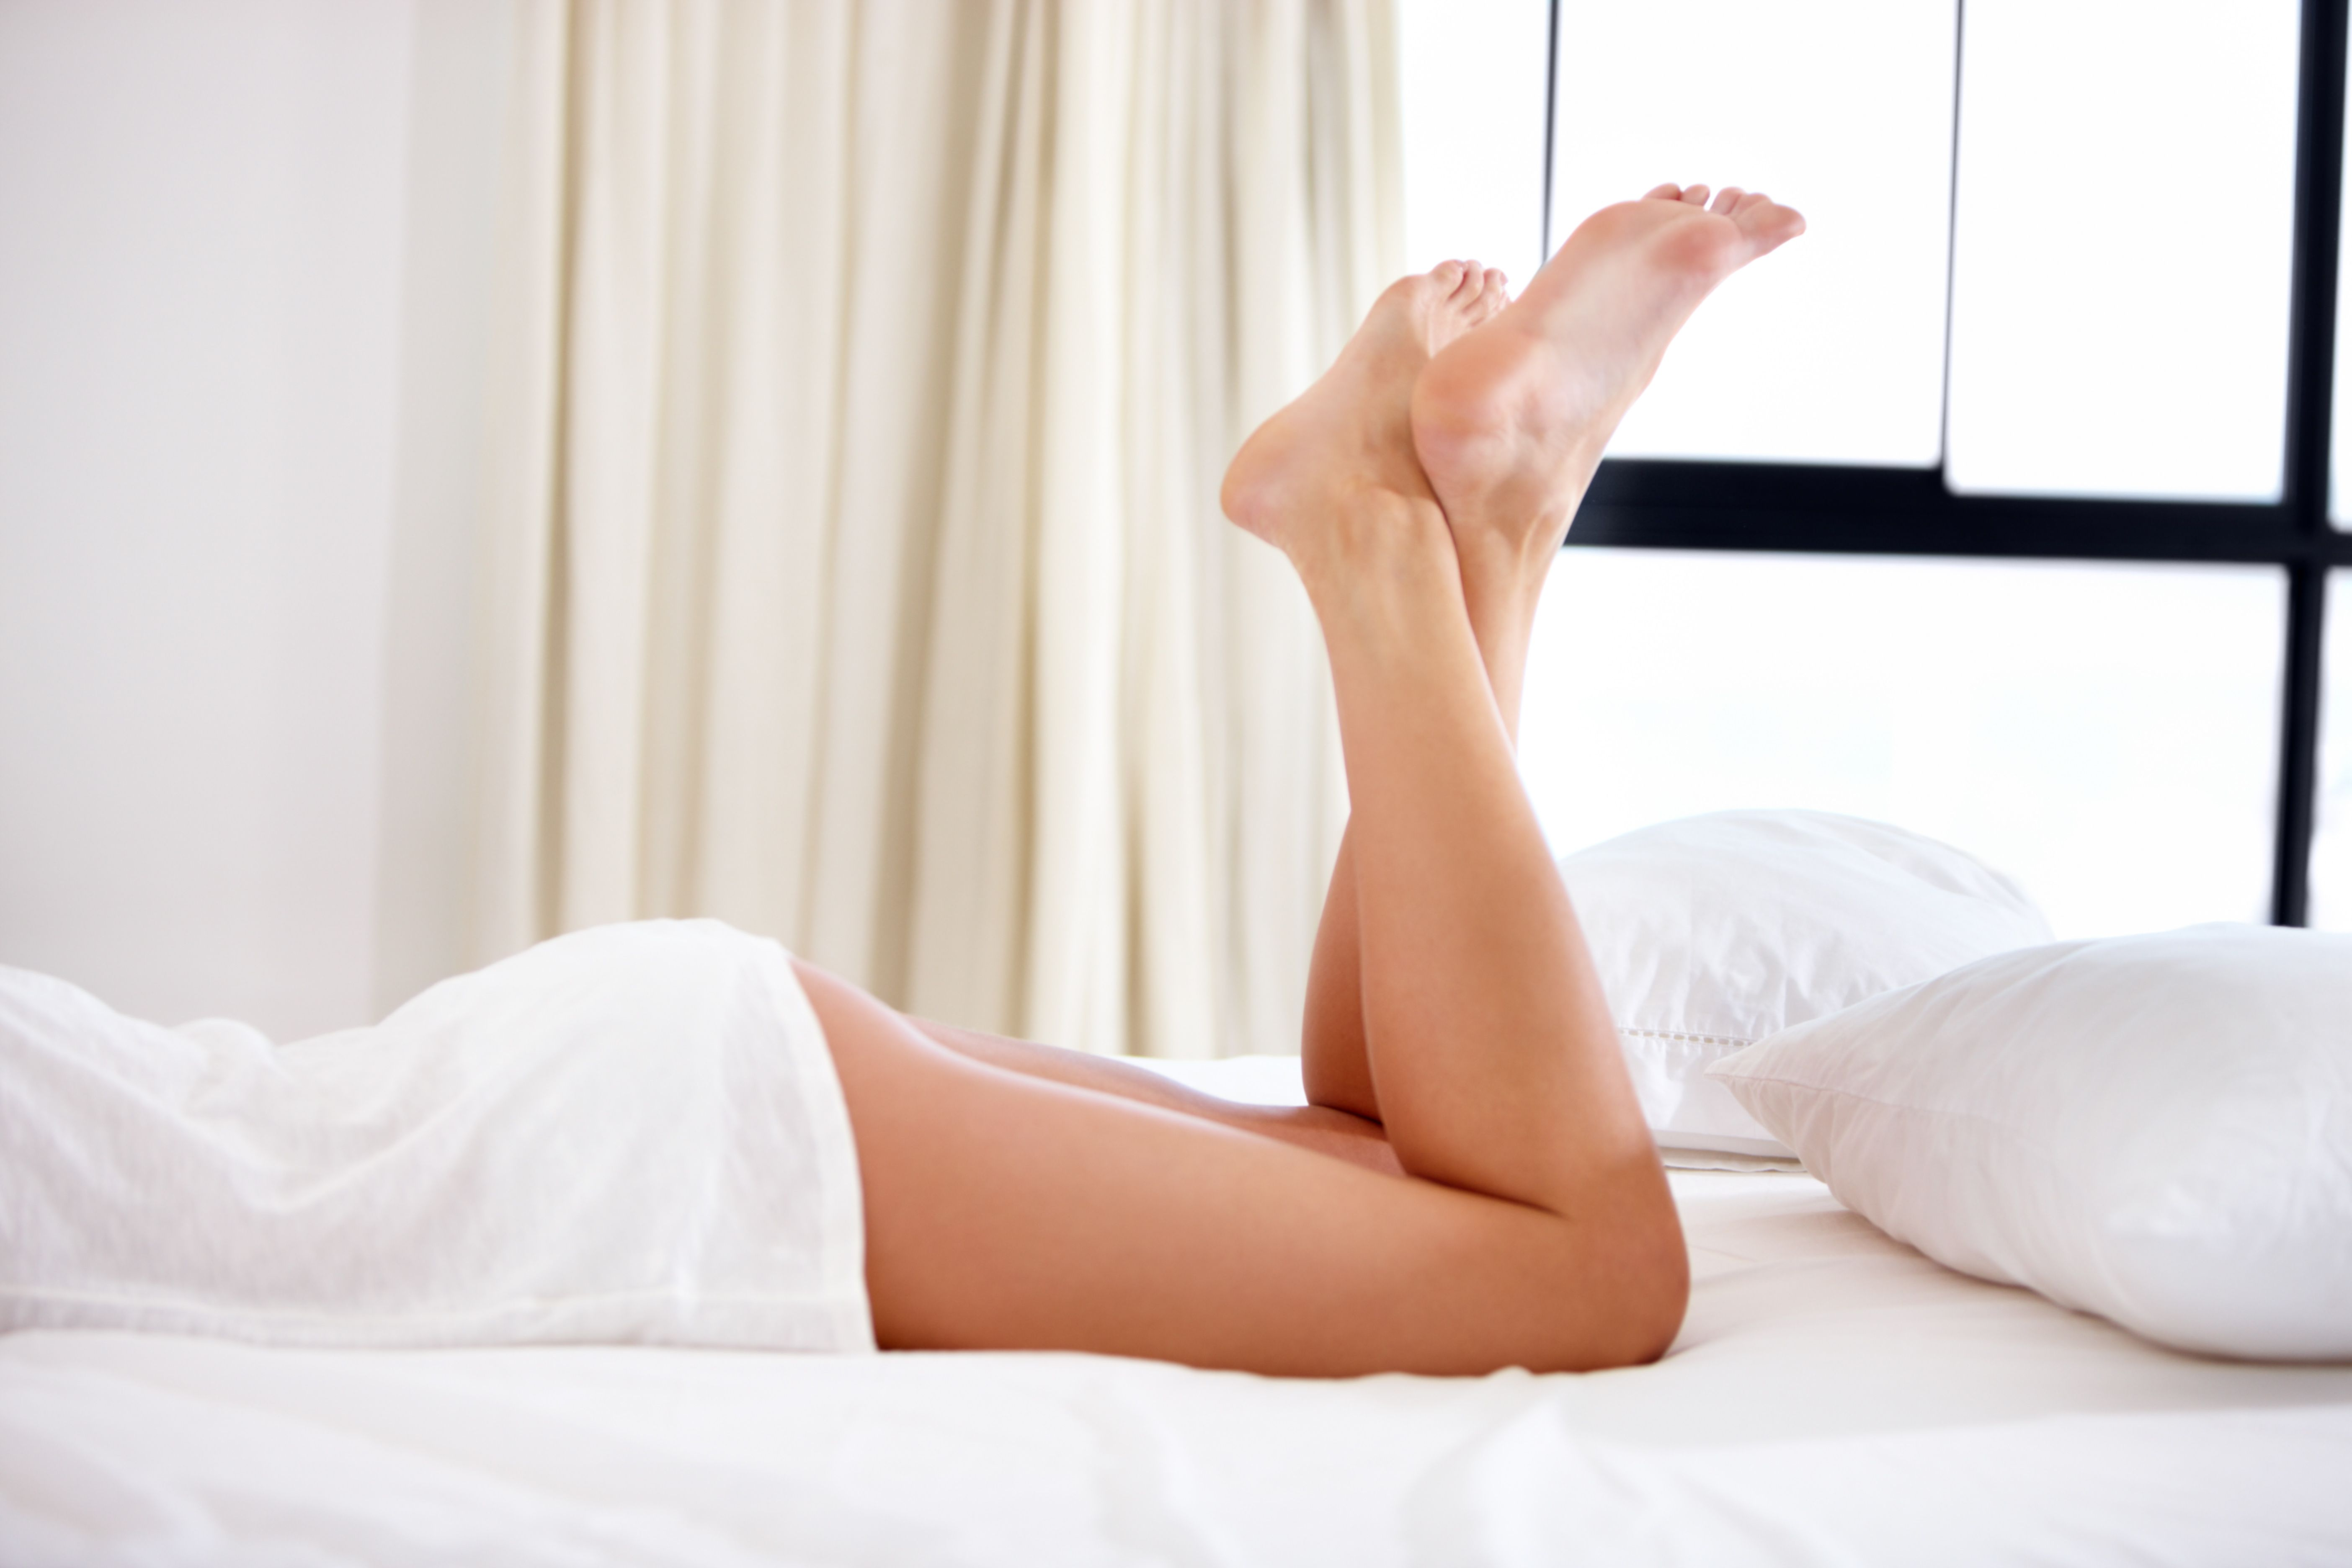 Is bleeding after anal sex normal